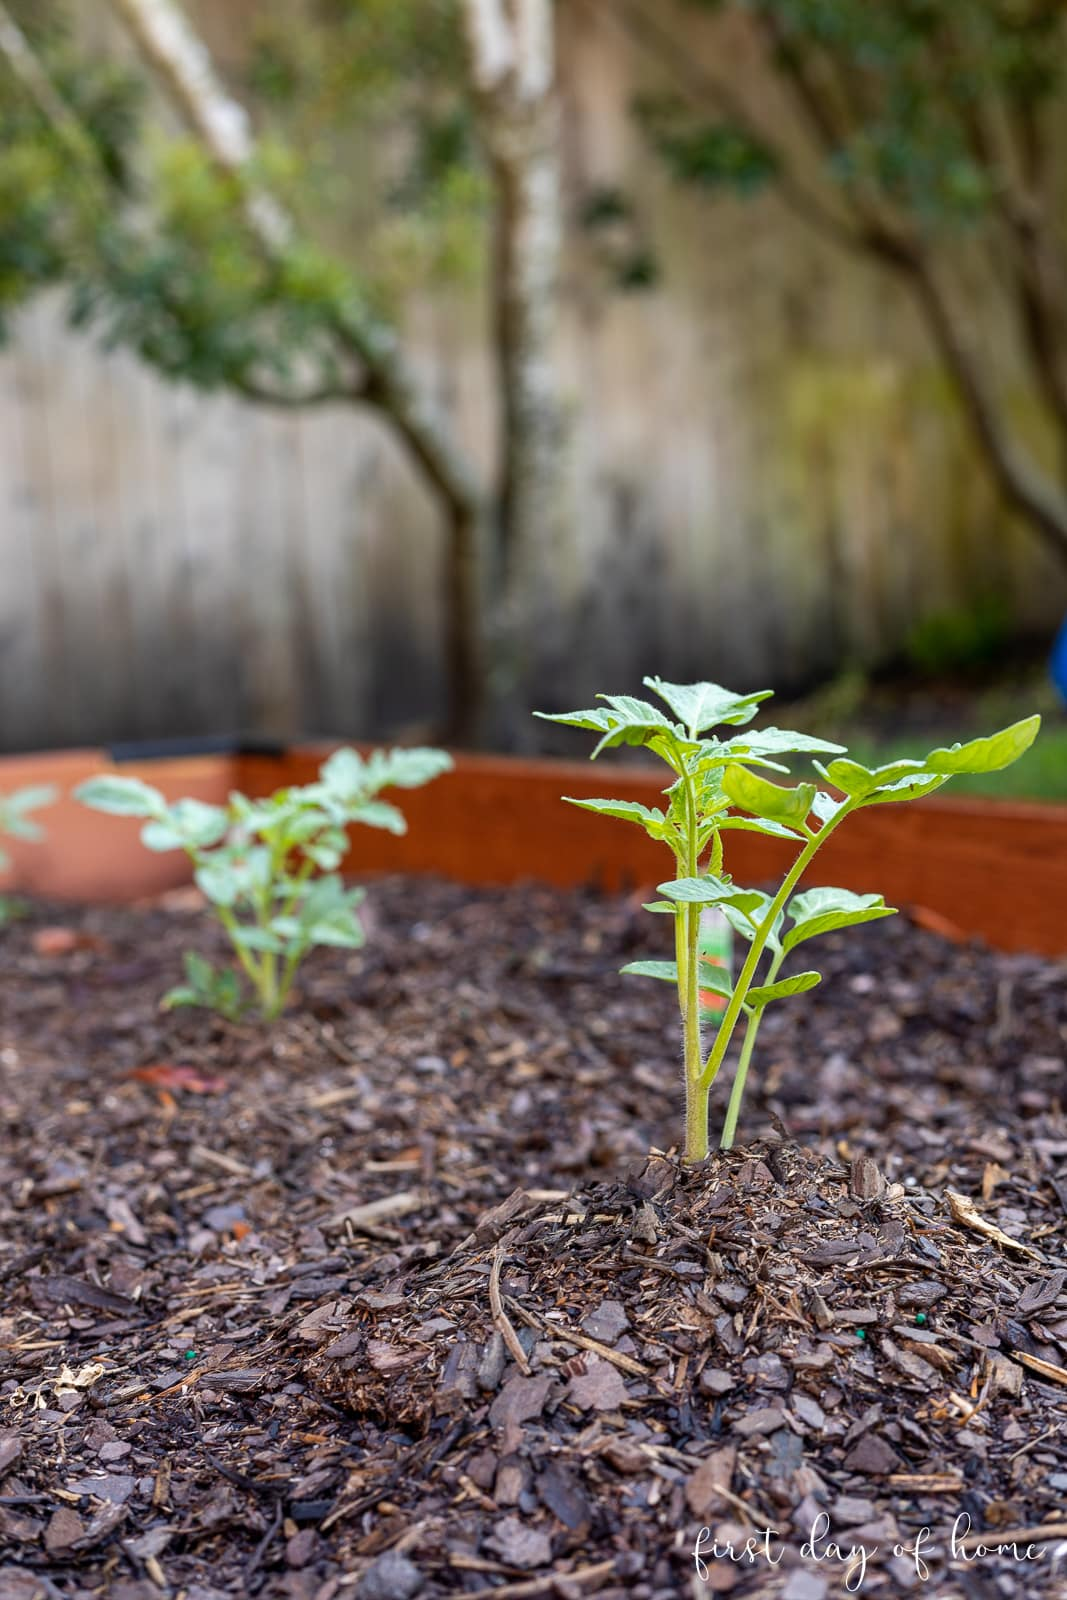 Tomato seedling just planted in raised bed vegetable garden